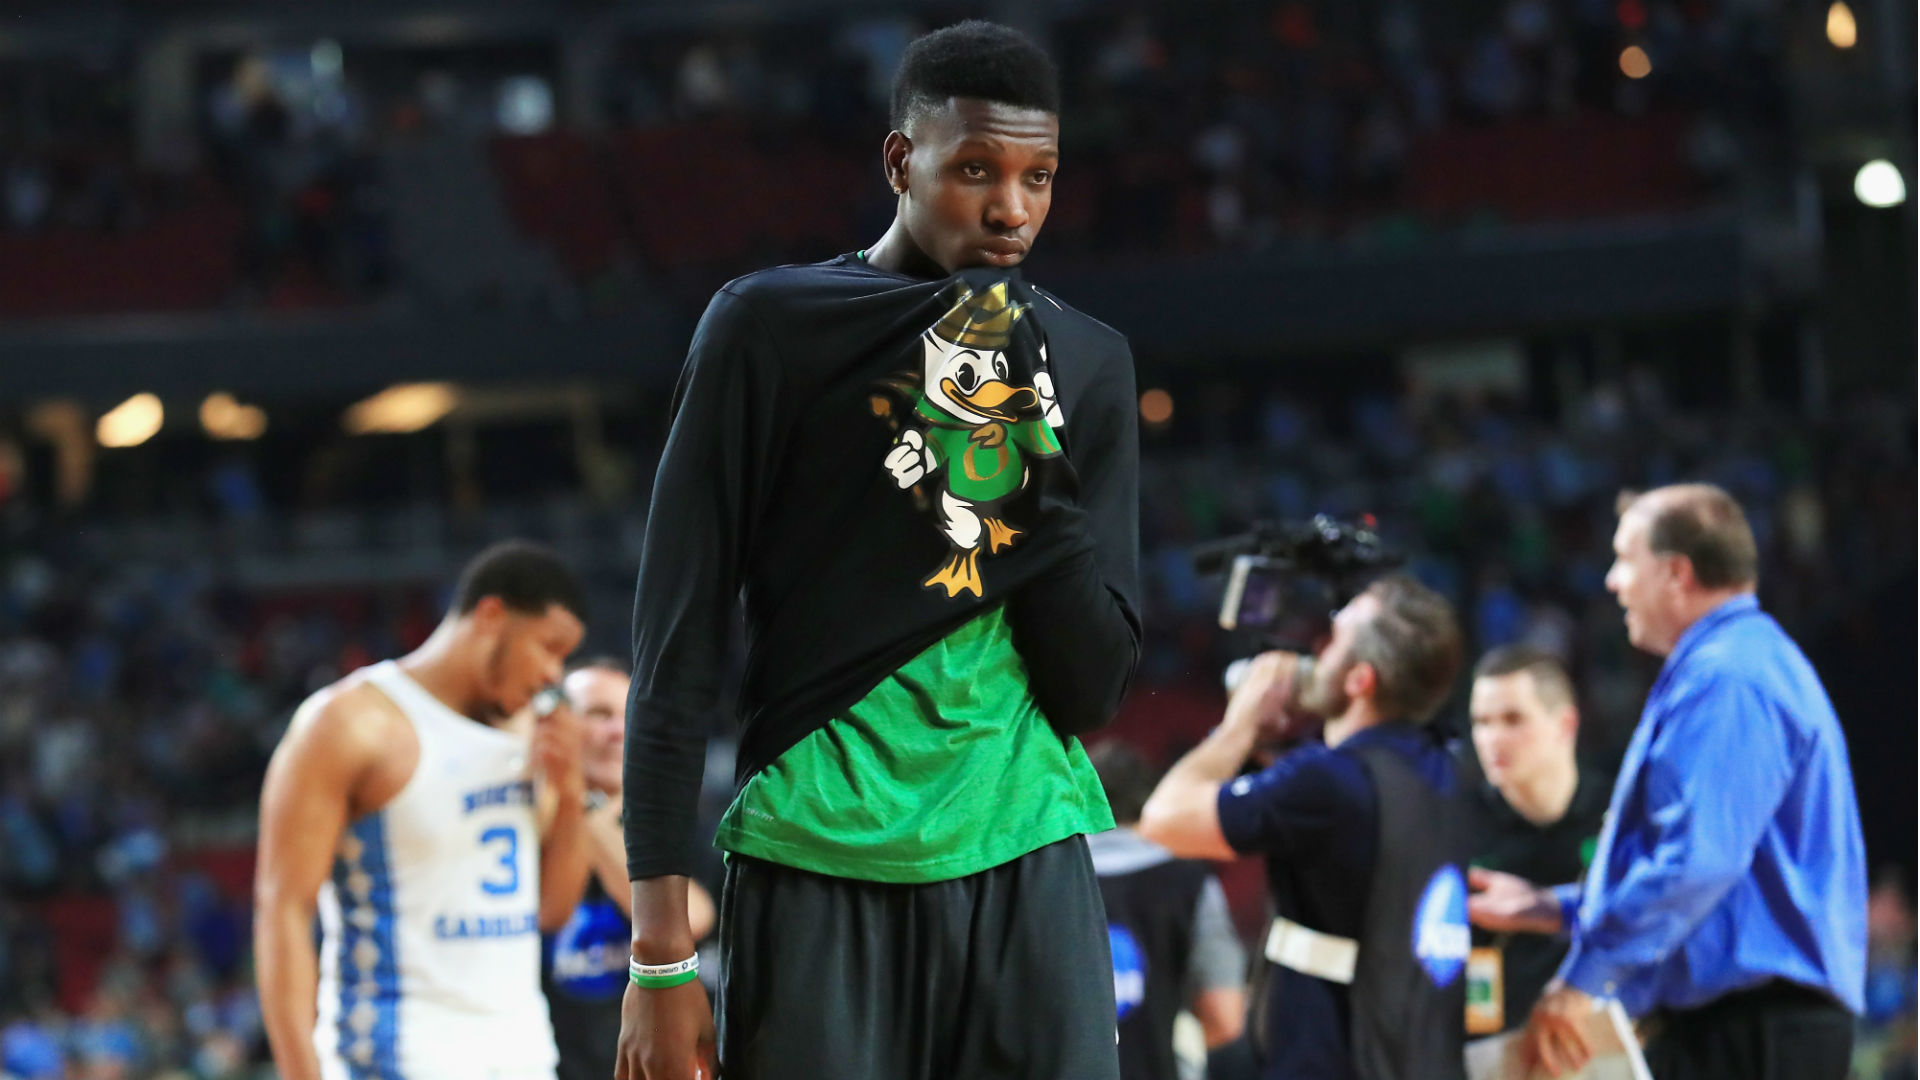 Montreal native Chris Boucher scores first NBA points in Raptors loss